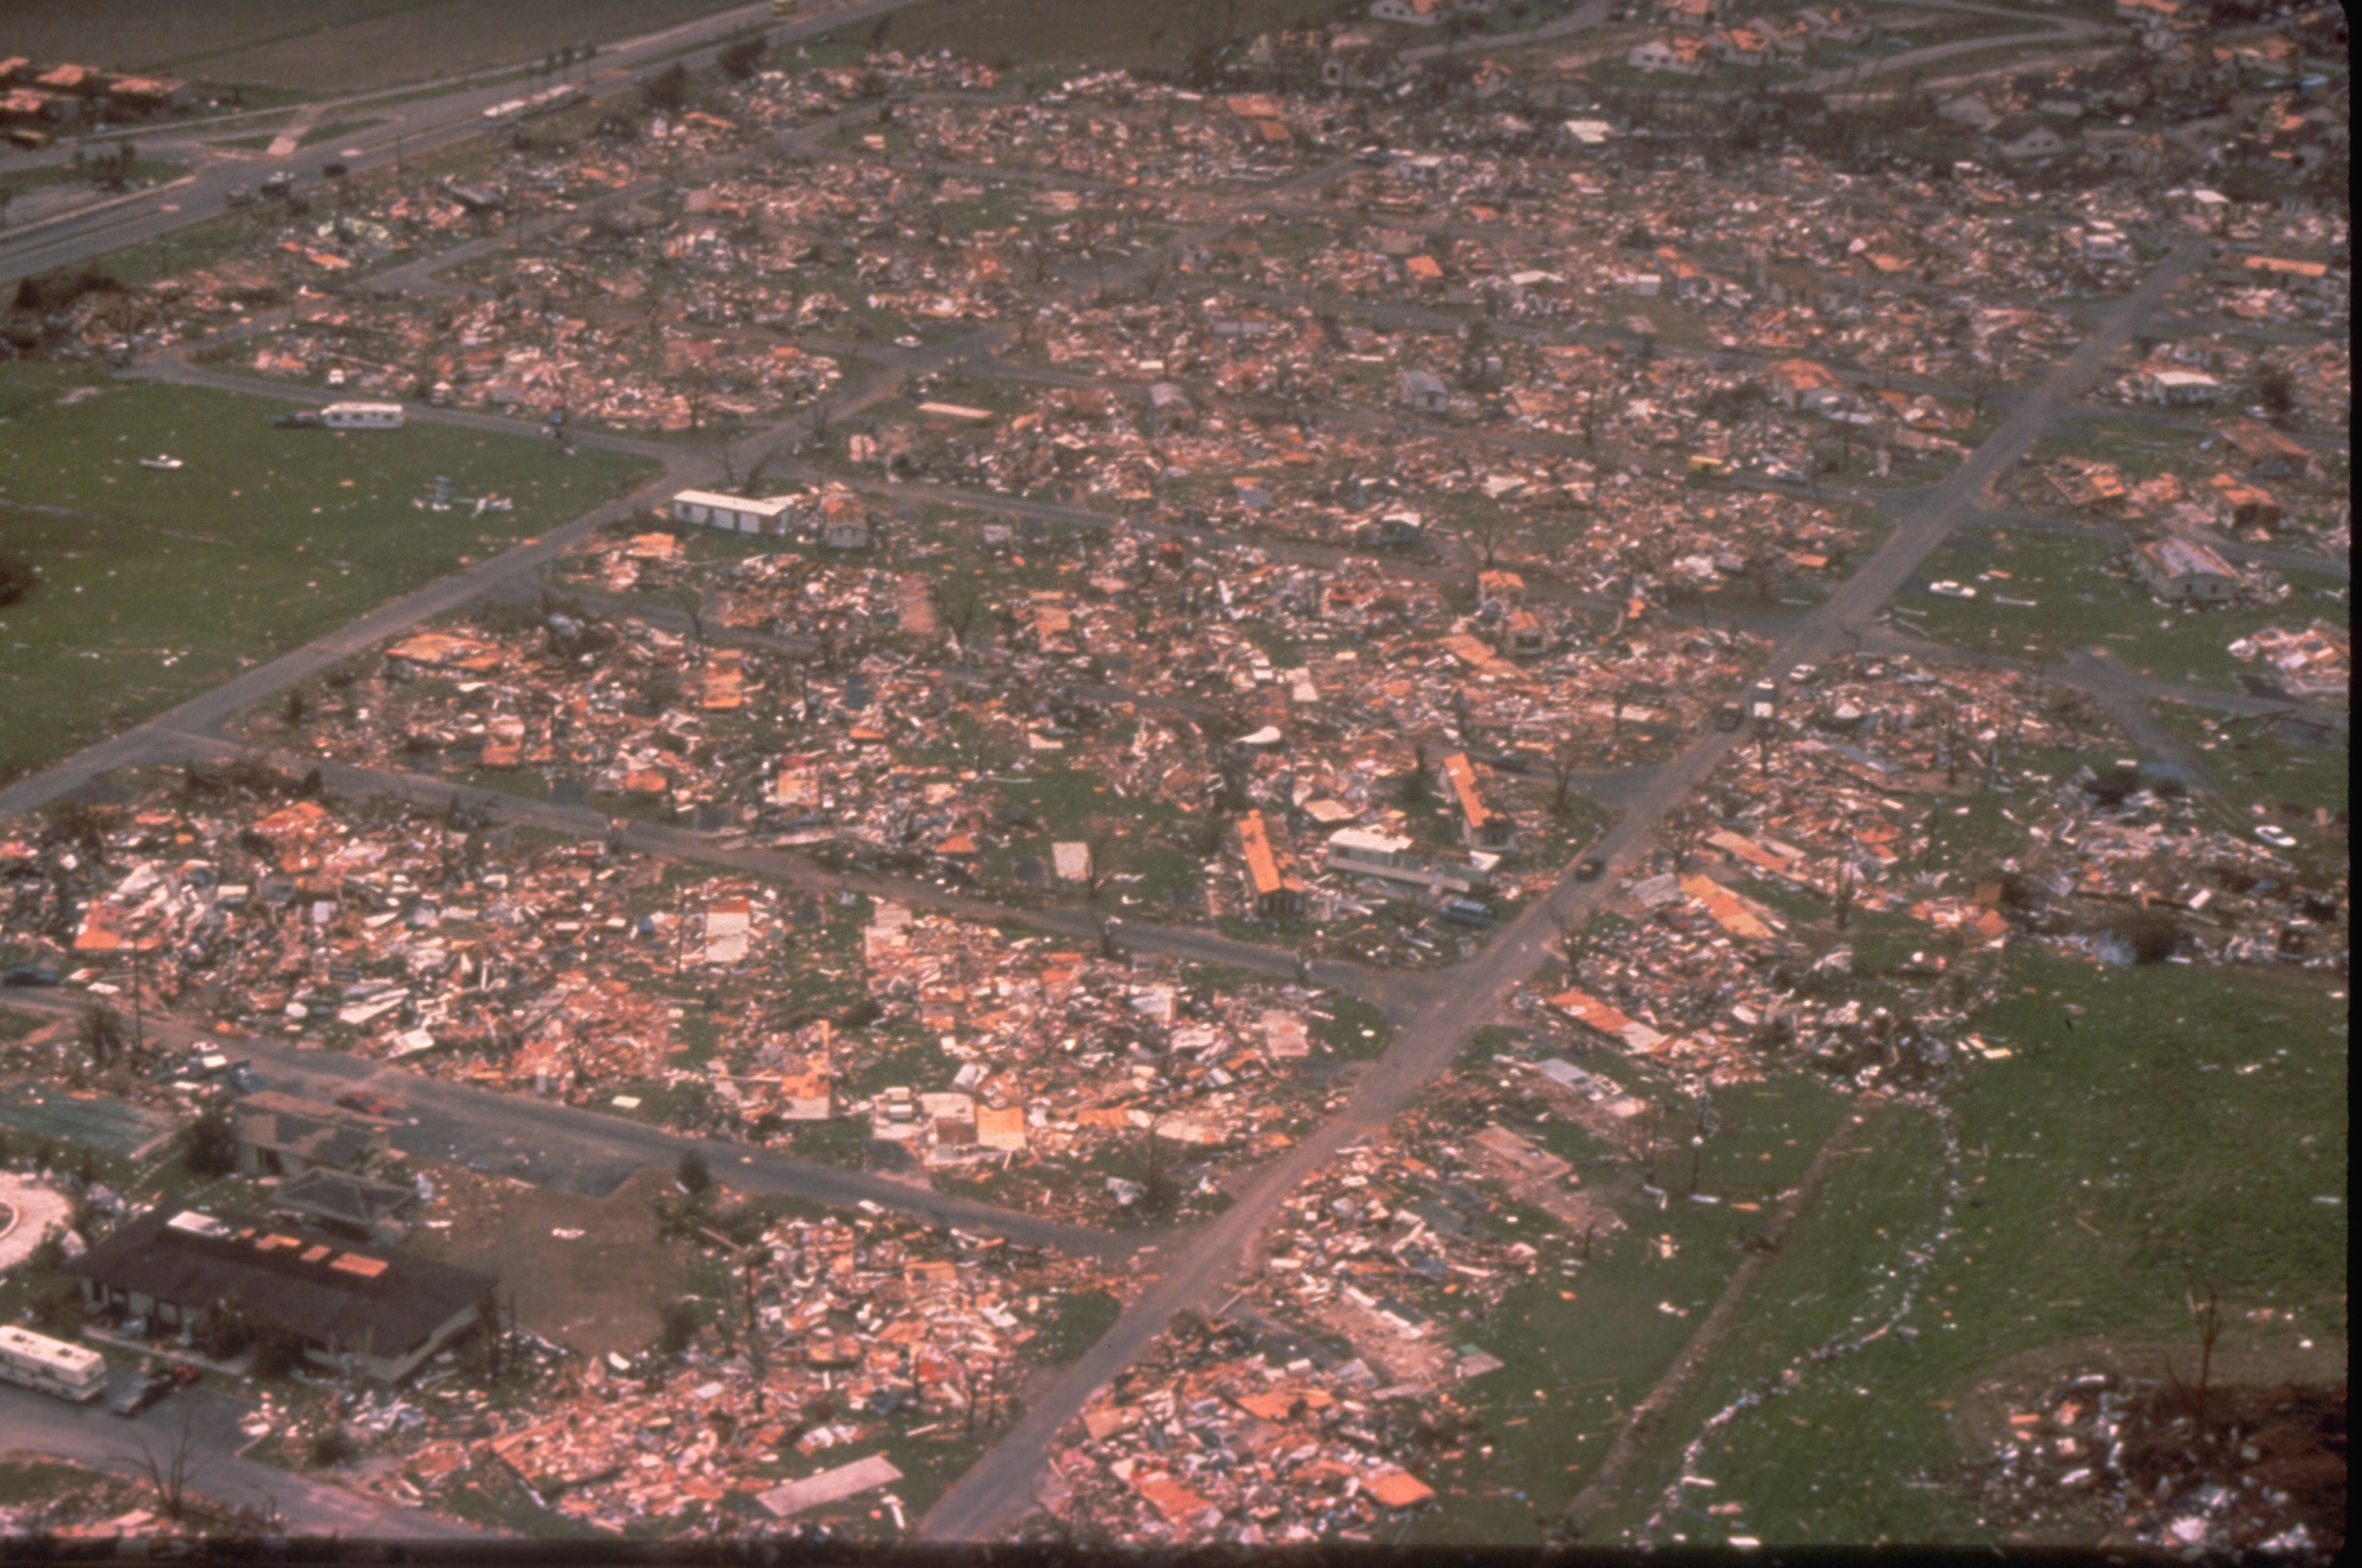 An aerial view of Dade County, Florida, shows the damage Hurricane Andrew wrought on a mobile home park when it struck in a large mobile home park in mid August, 1992. One million people were evacuated and 54 died in the hurricane. (Bob Epstein/FEMA News Photo/via Wikimedia Commons)